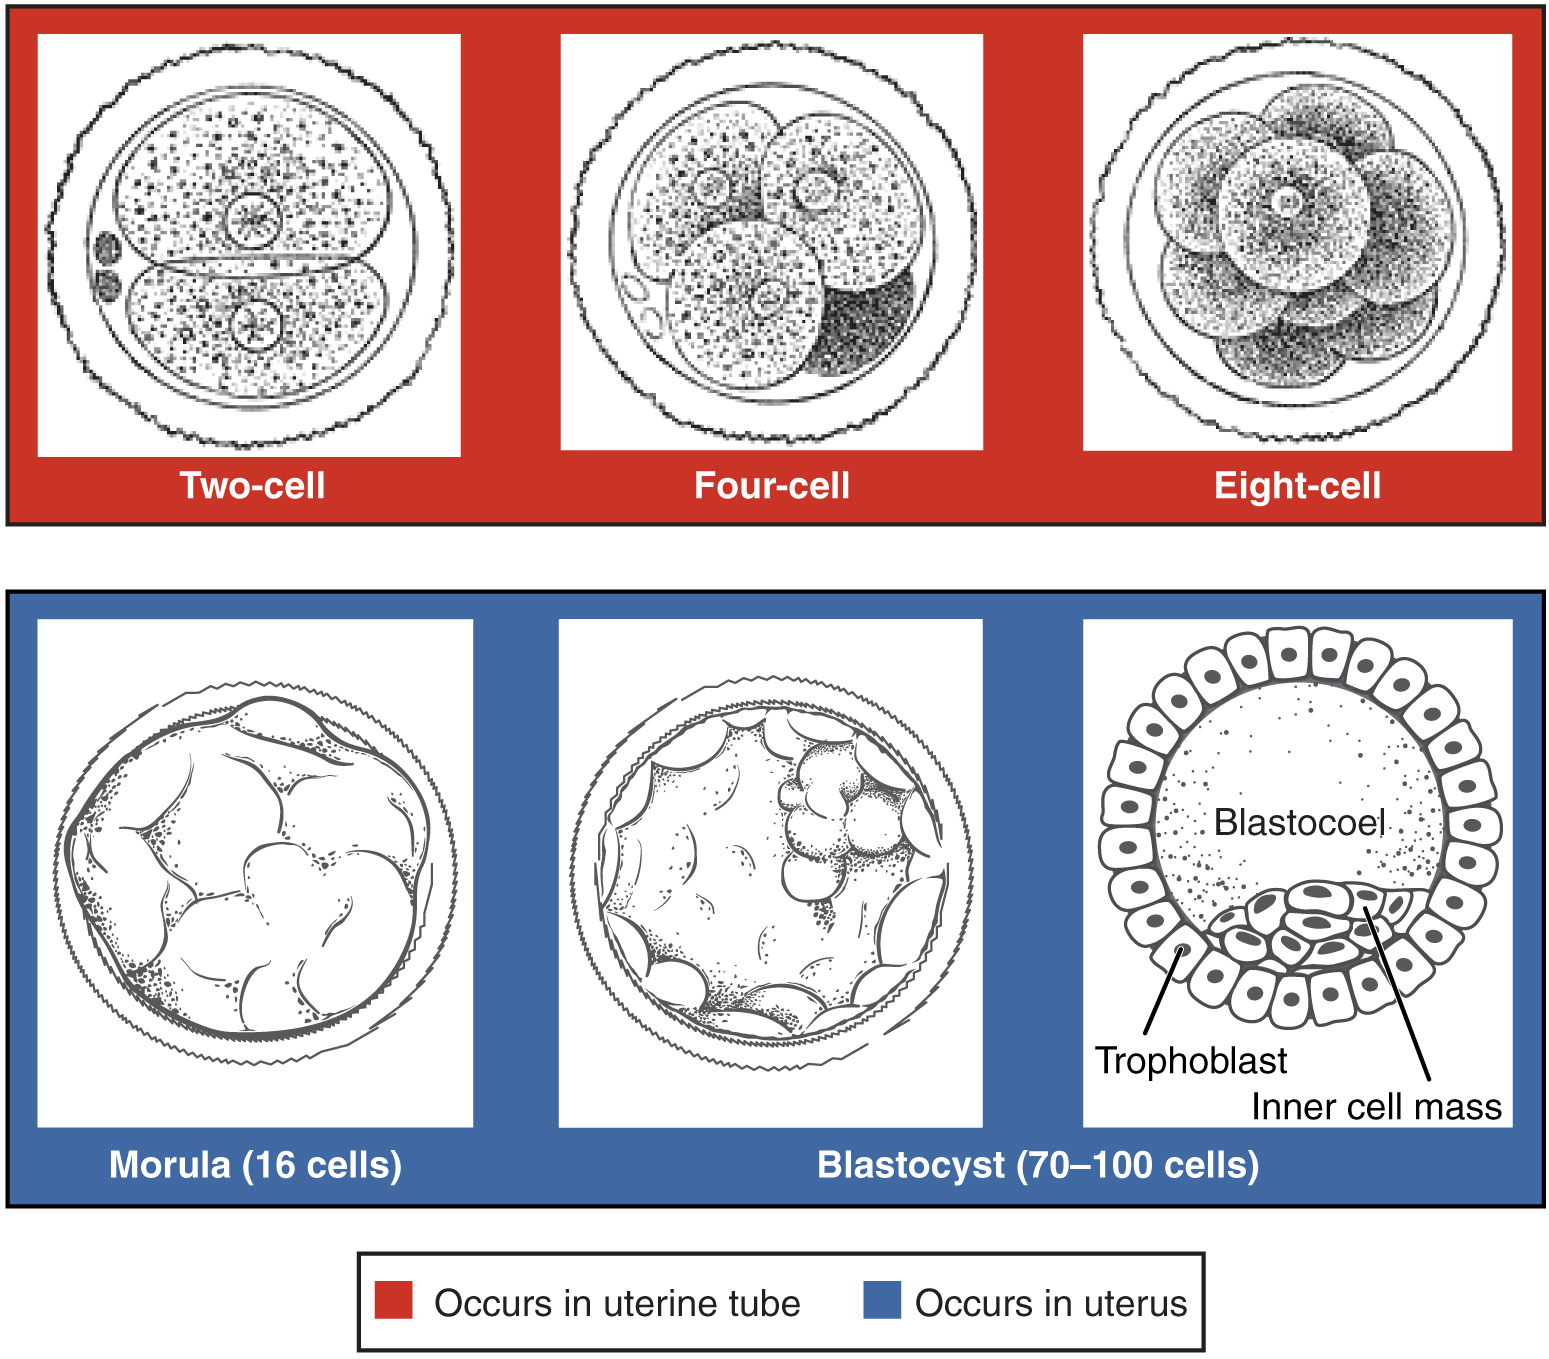 This figure shows the different stages of cell divisions taking place before the embryo is formed. The top panel shows the cell divisions occurring in the uterine tube and the bottom panel shows the cell divisions occurring in the uterus.